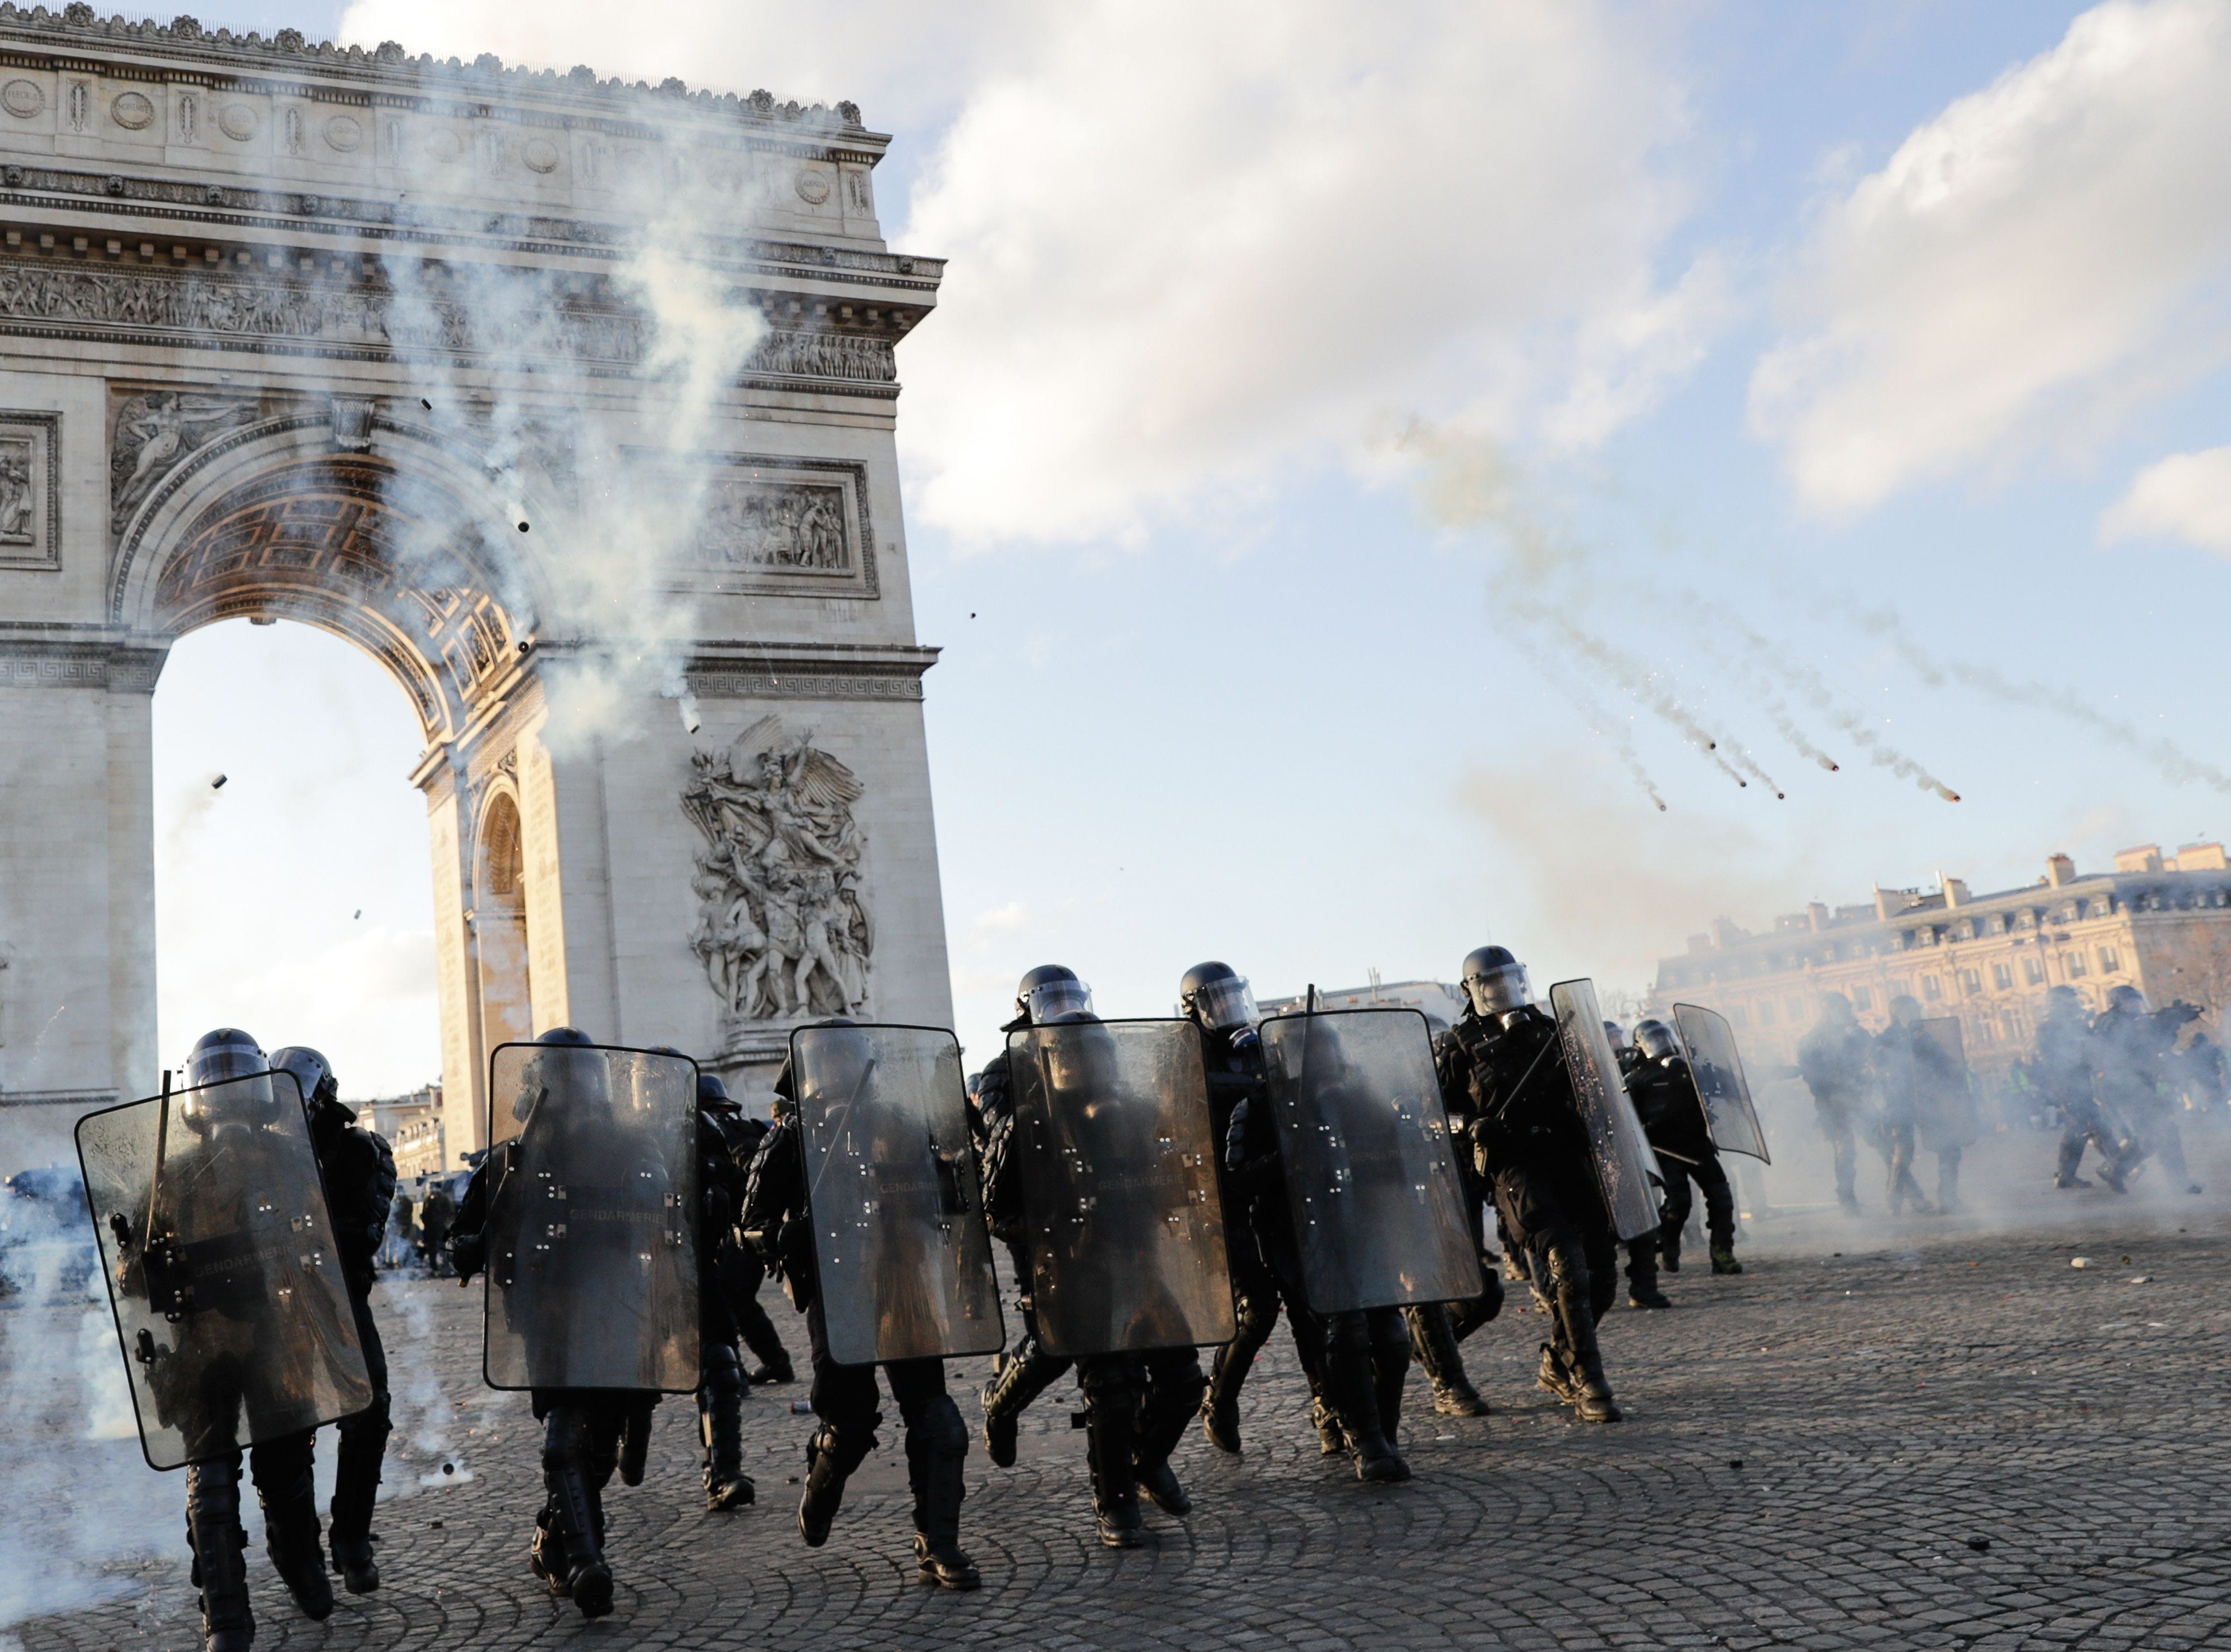 Riot police charge using tear gas canister at the Arc de Triomphe on the Place de l'Etoile in Paris on March 16, 2019, during clashes with Yellow Vest protesters, on the 18th consecutive Saturday of demonstrations called by the 'Yellow Vest' (gilets jaunes) movement.